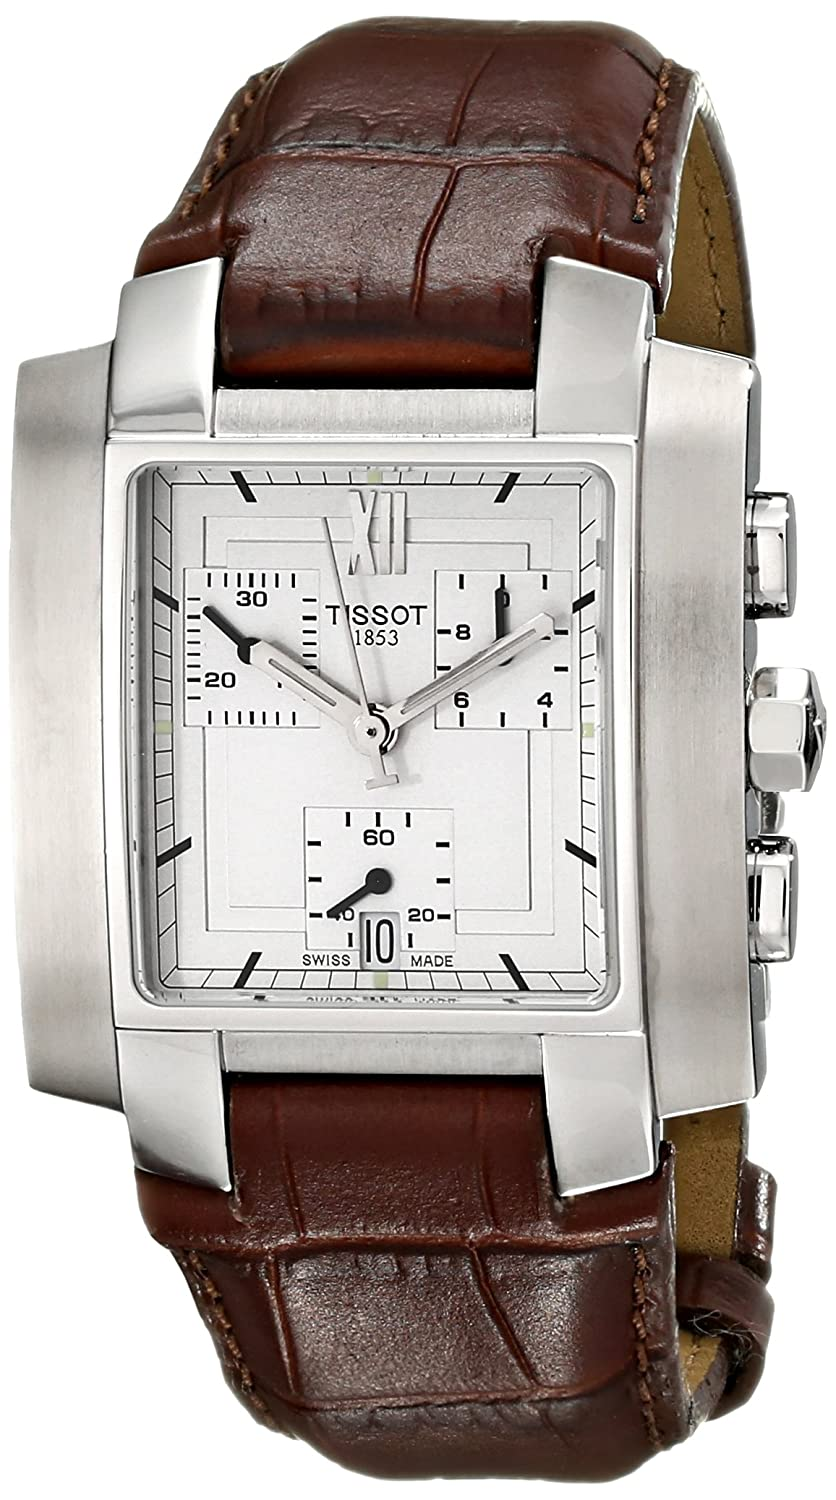 Amazon.com: Tissot Mens T60151733 TXL Chronograph Brown Leather Watch: Watches